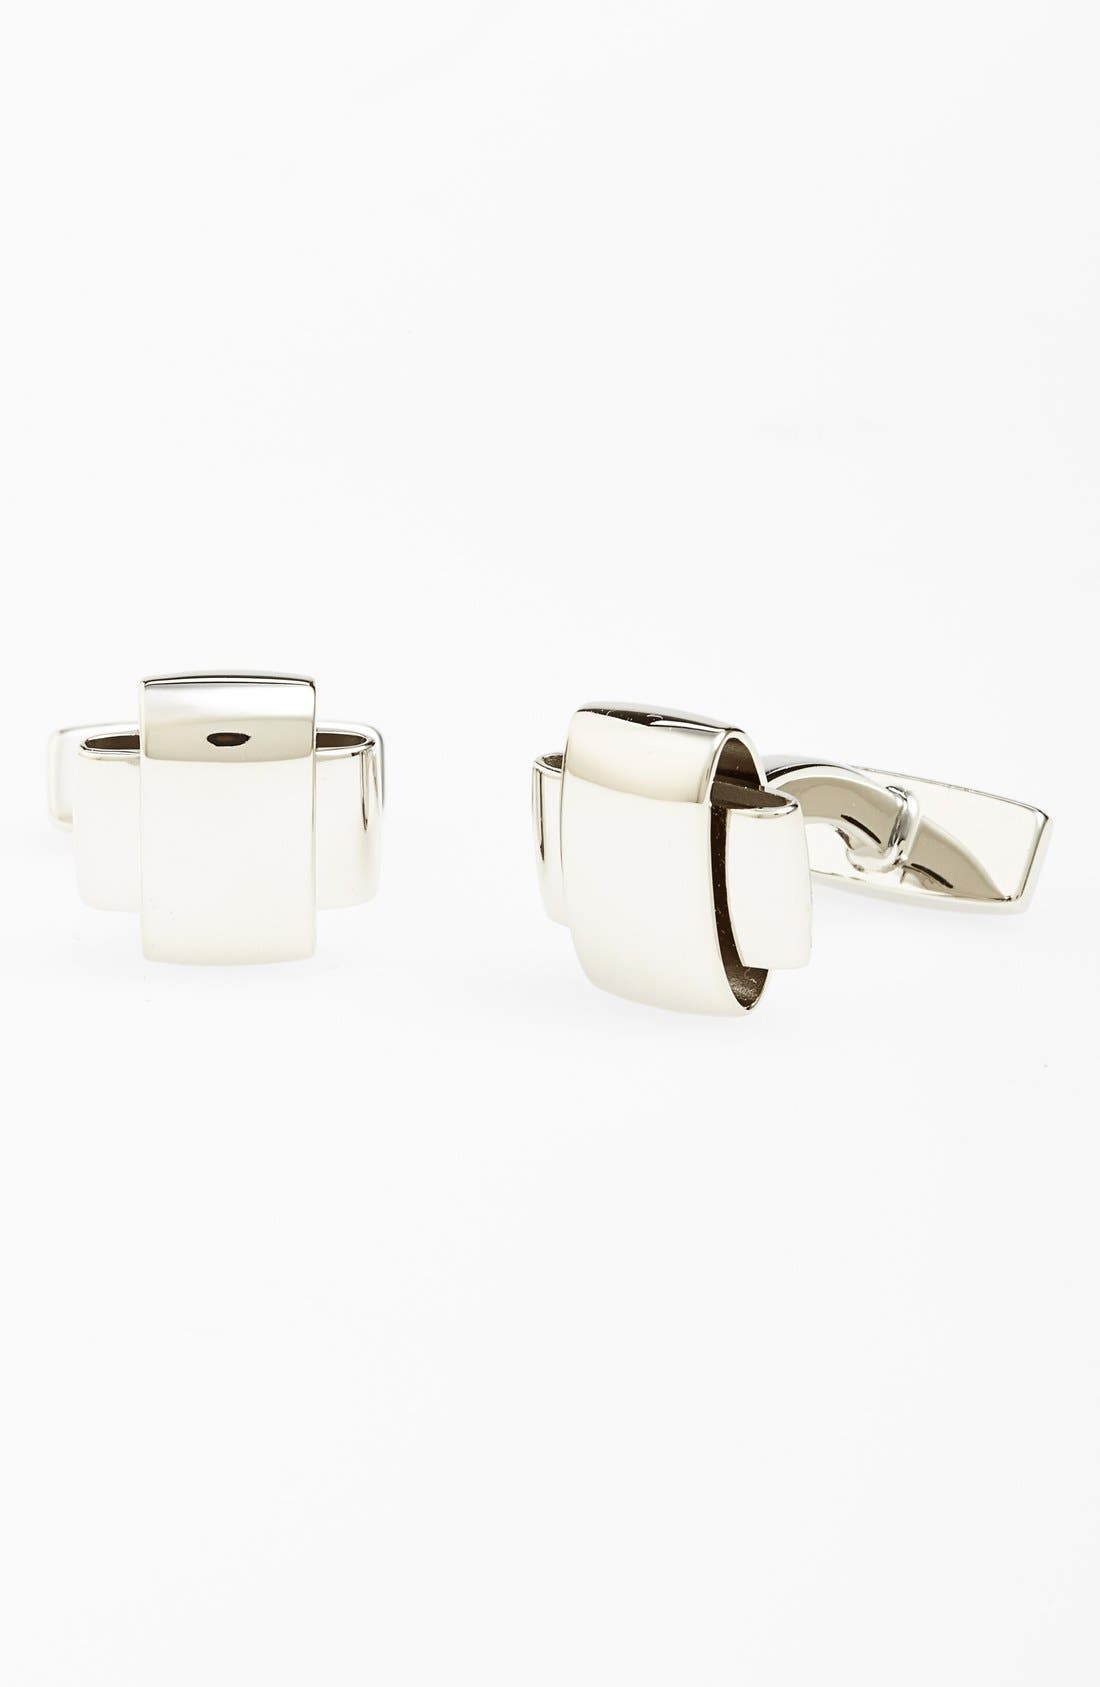 Main Image - BOSS HUGO BOSS 'Olgar' Cuff Links